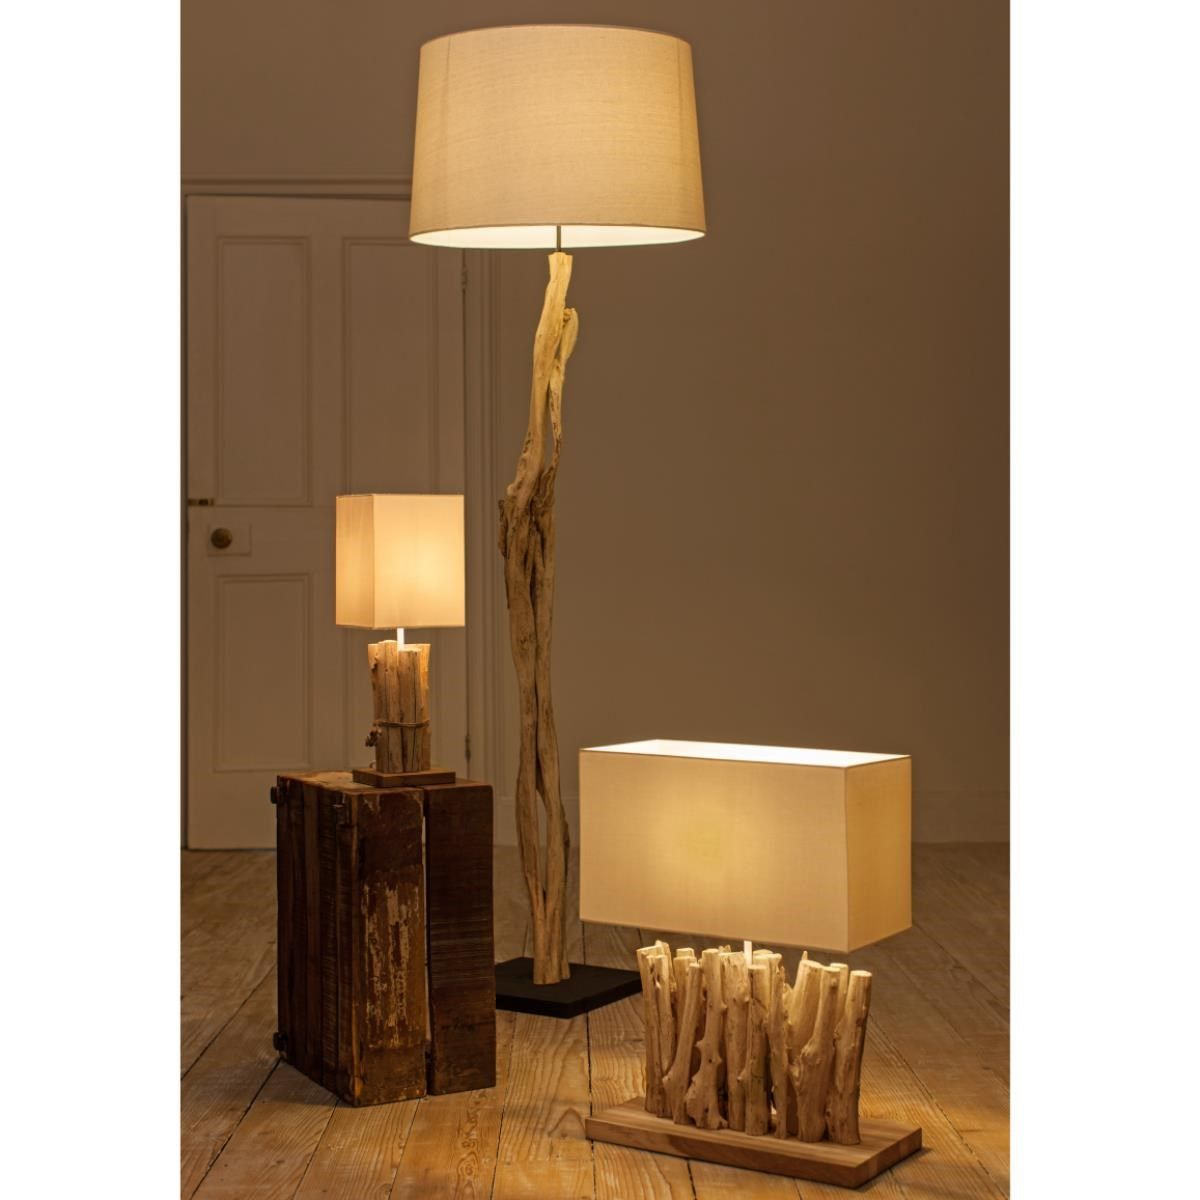 decor lamps wood pottery uk coastal lamp floor driftwood barn relaxing